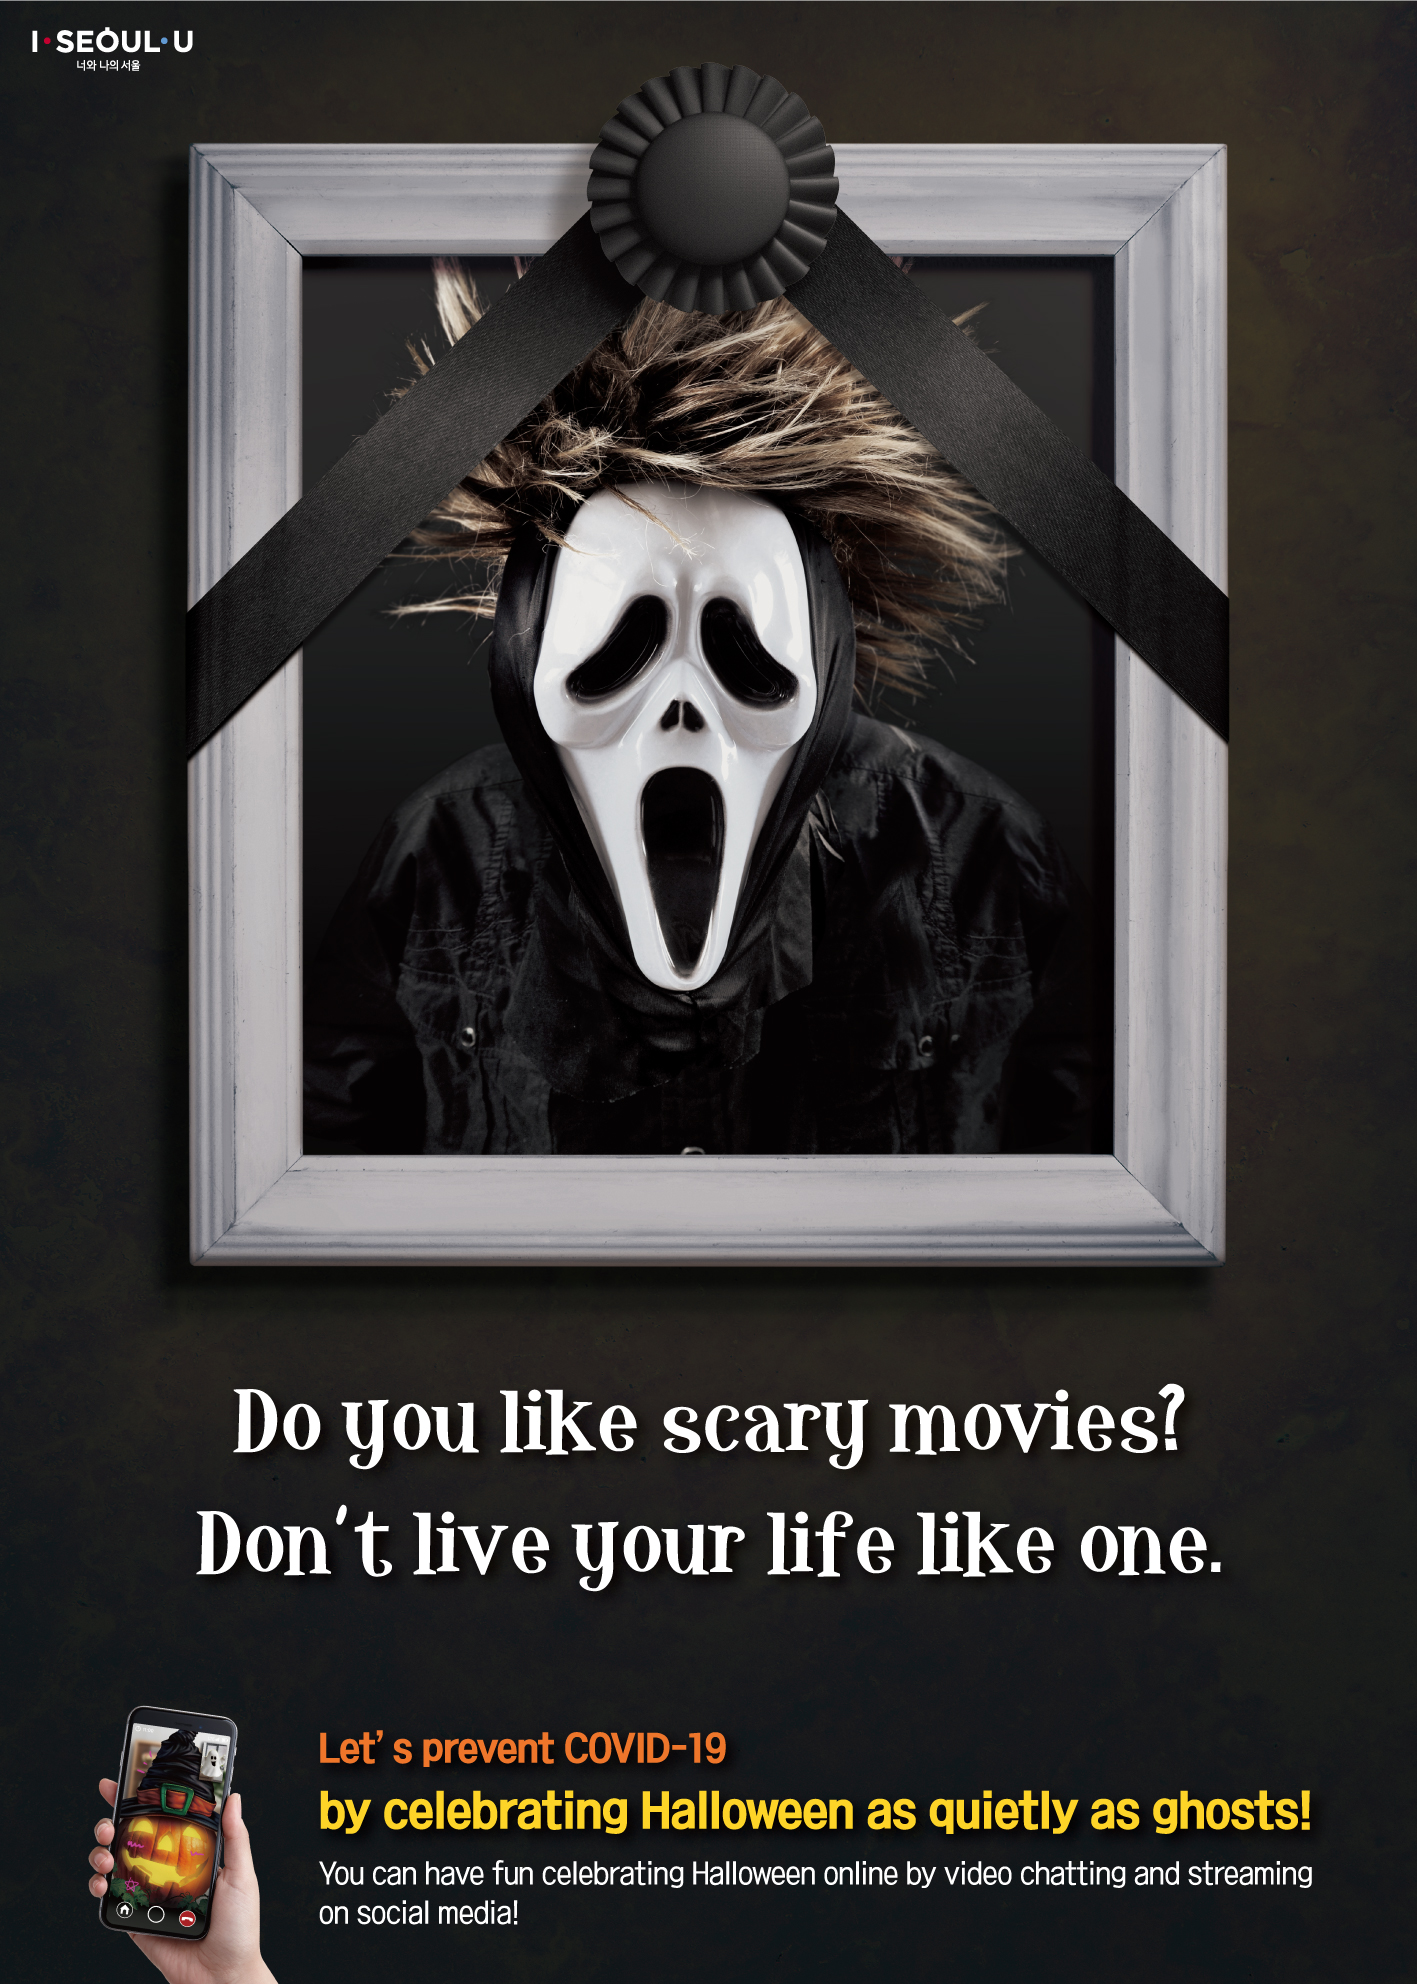 Do you like scary movies? Don't live your life like one.